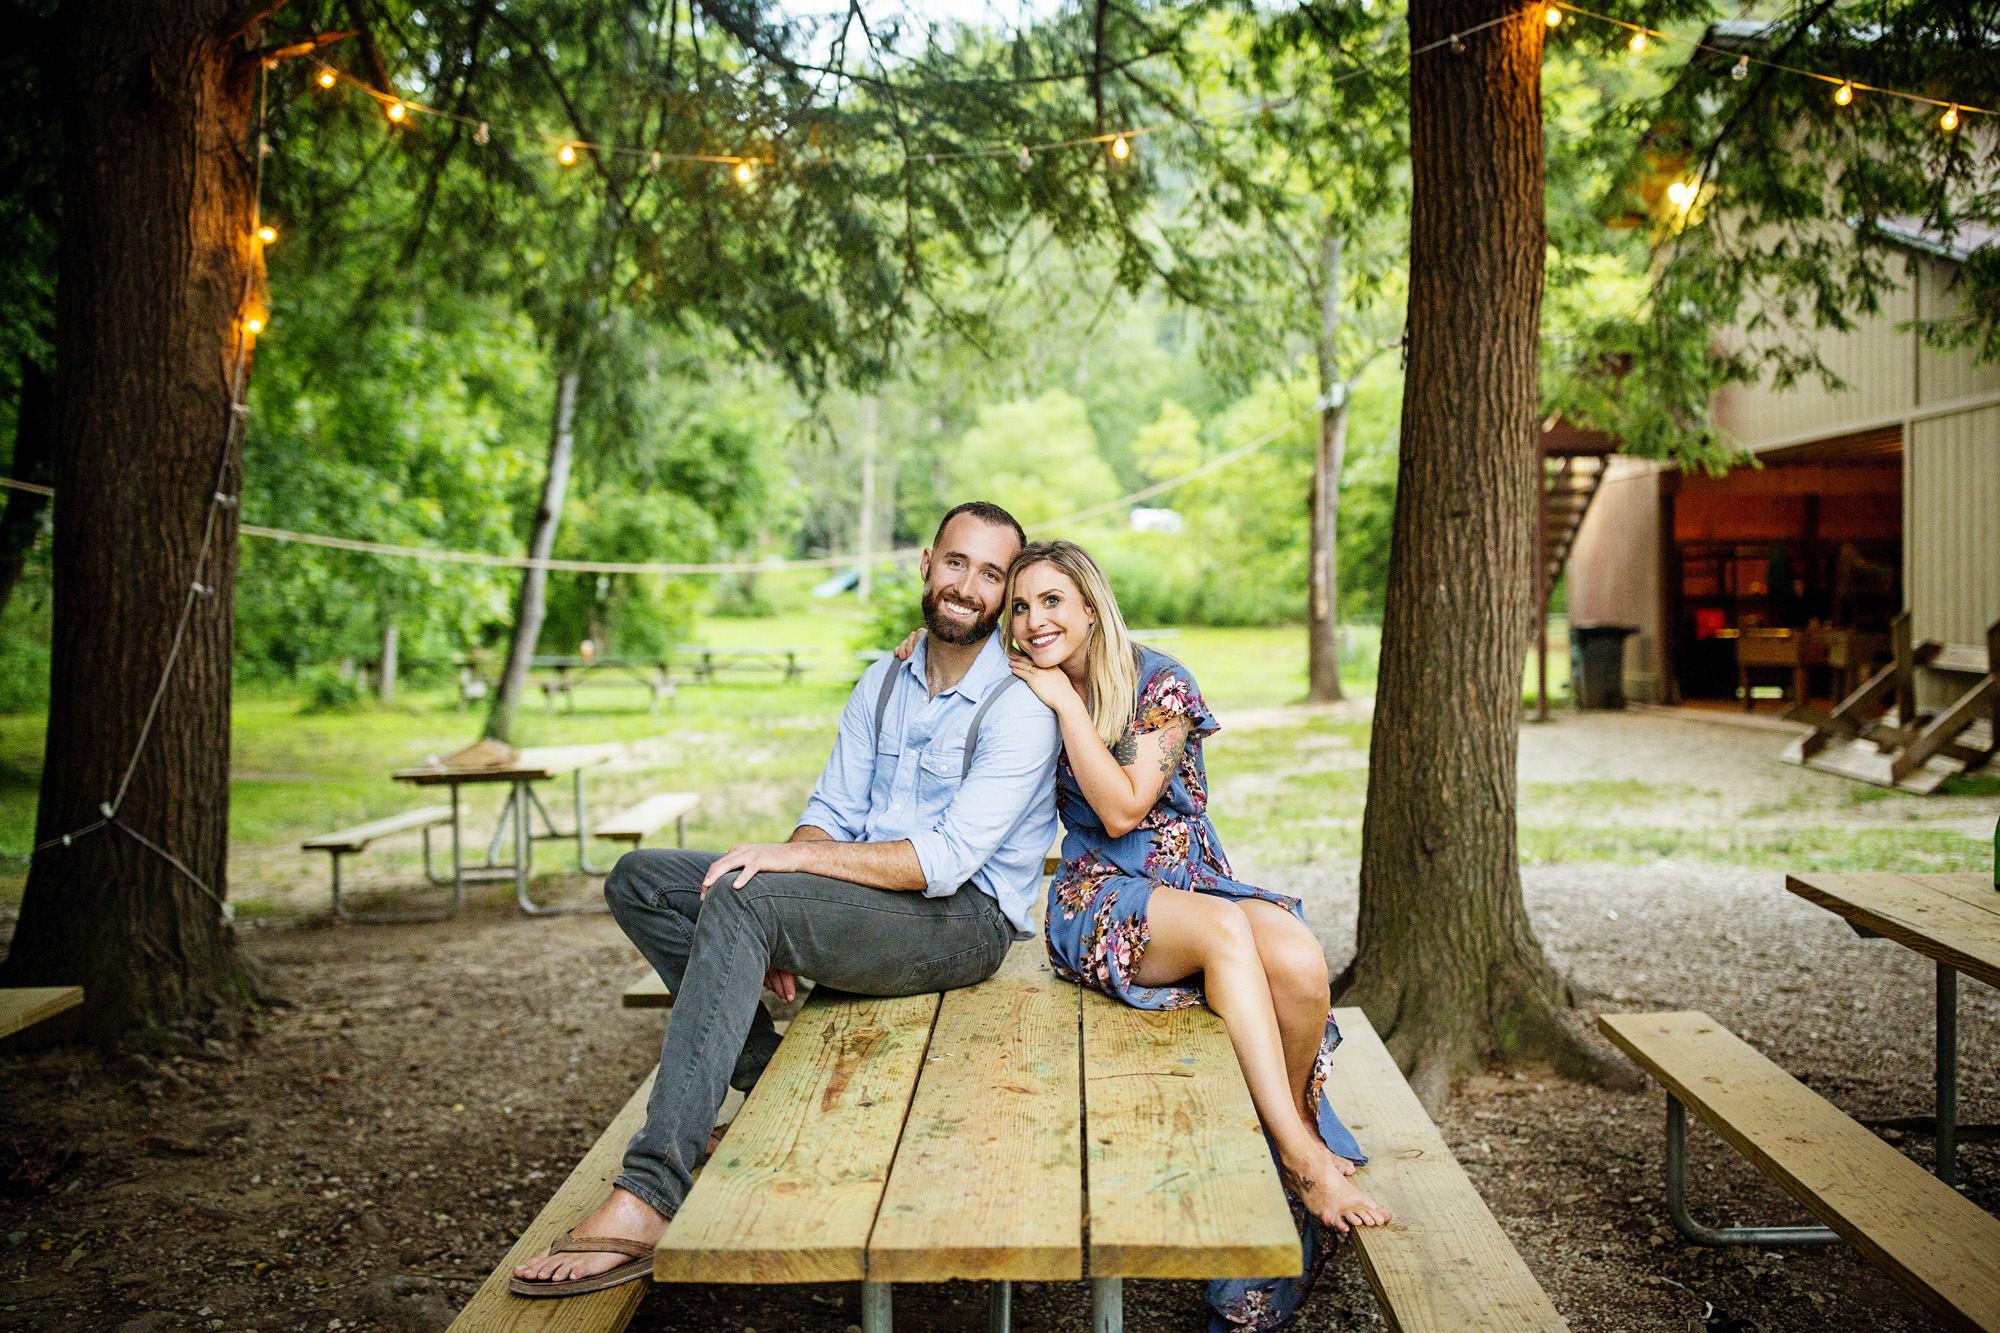 Seriously_Sabrina_Photography_Red_River_Gorge_Engagement_Session_Monika_Steven_036.jpg